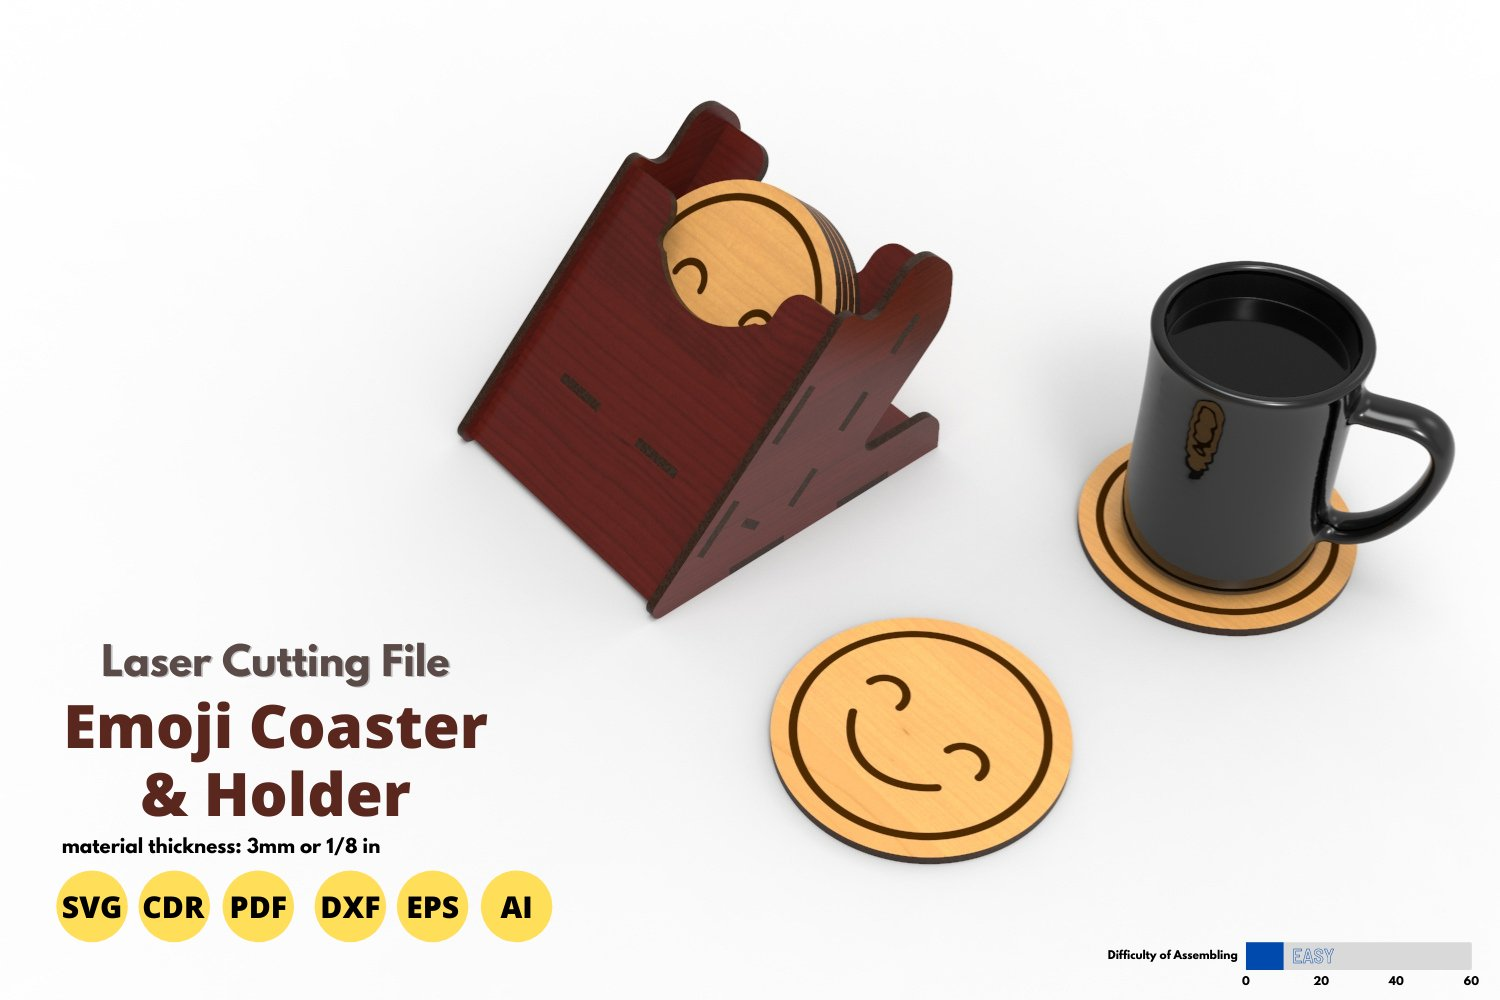 Emoji Coaster & Holder - laser cutting file example image 1